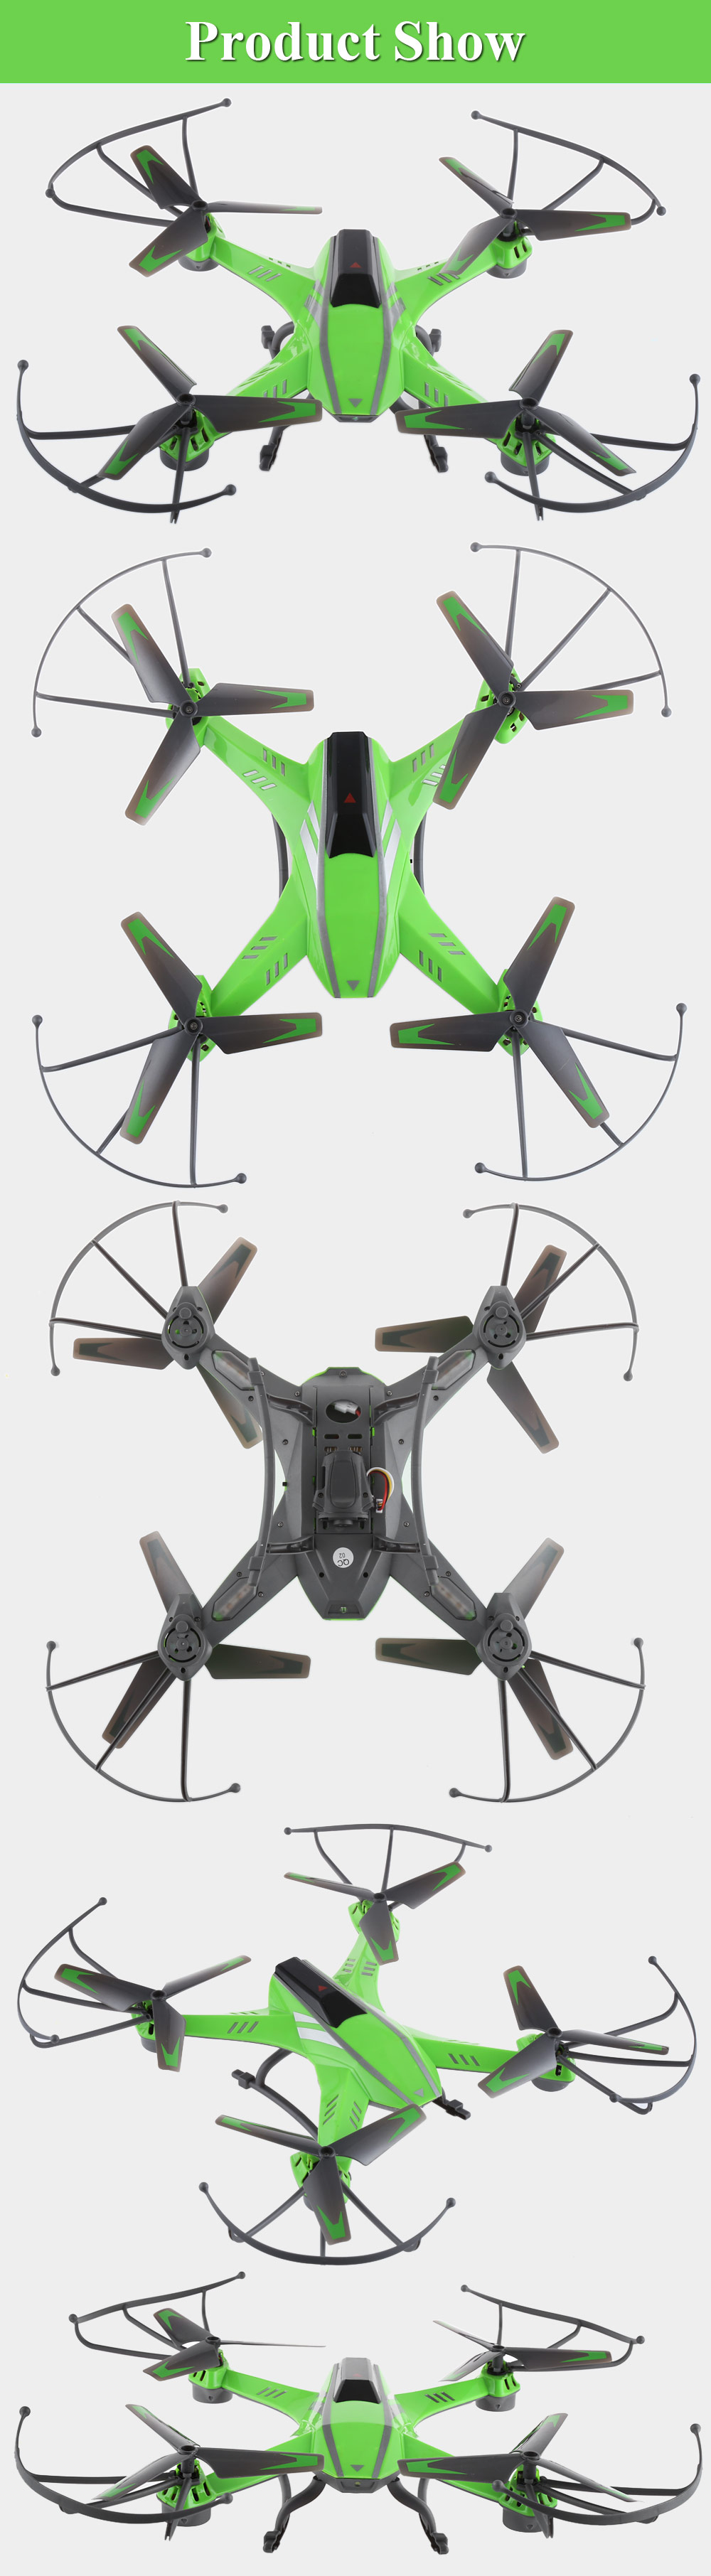 Attop A8 4CH 6-Axis Gyro 2.0MP Camera RC Quadcopter